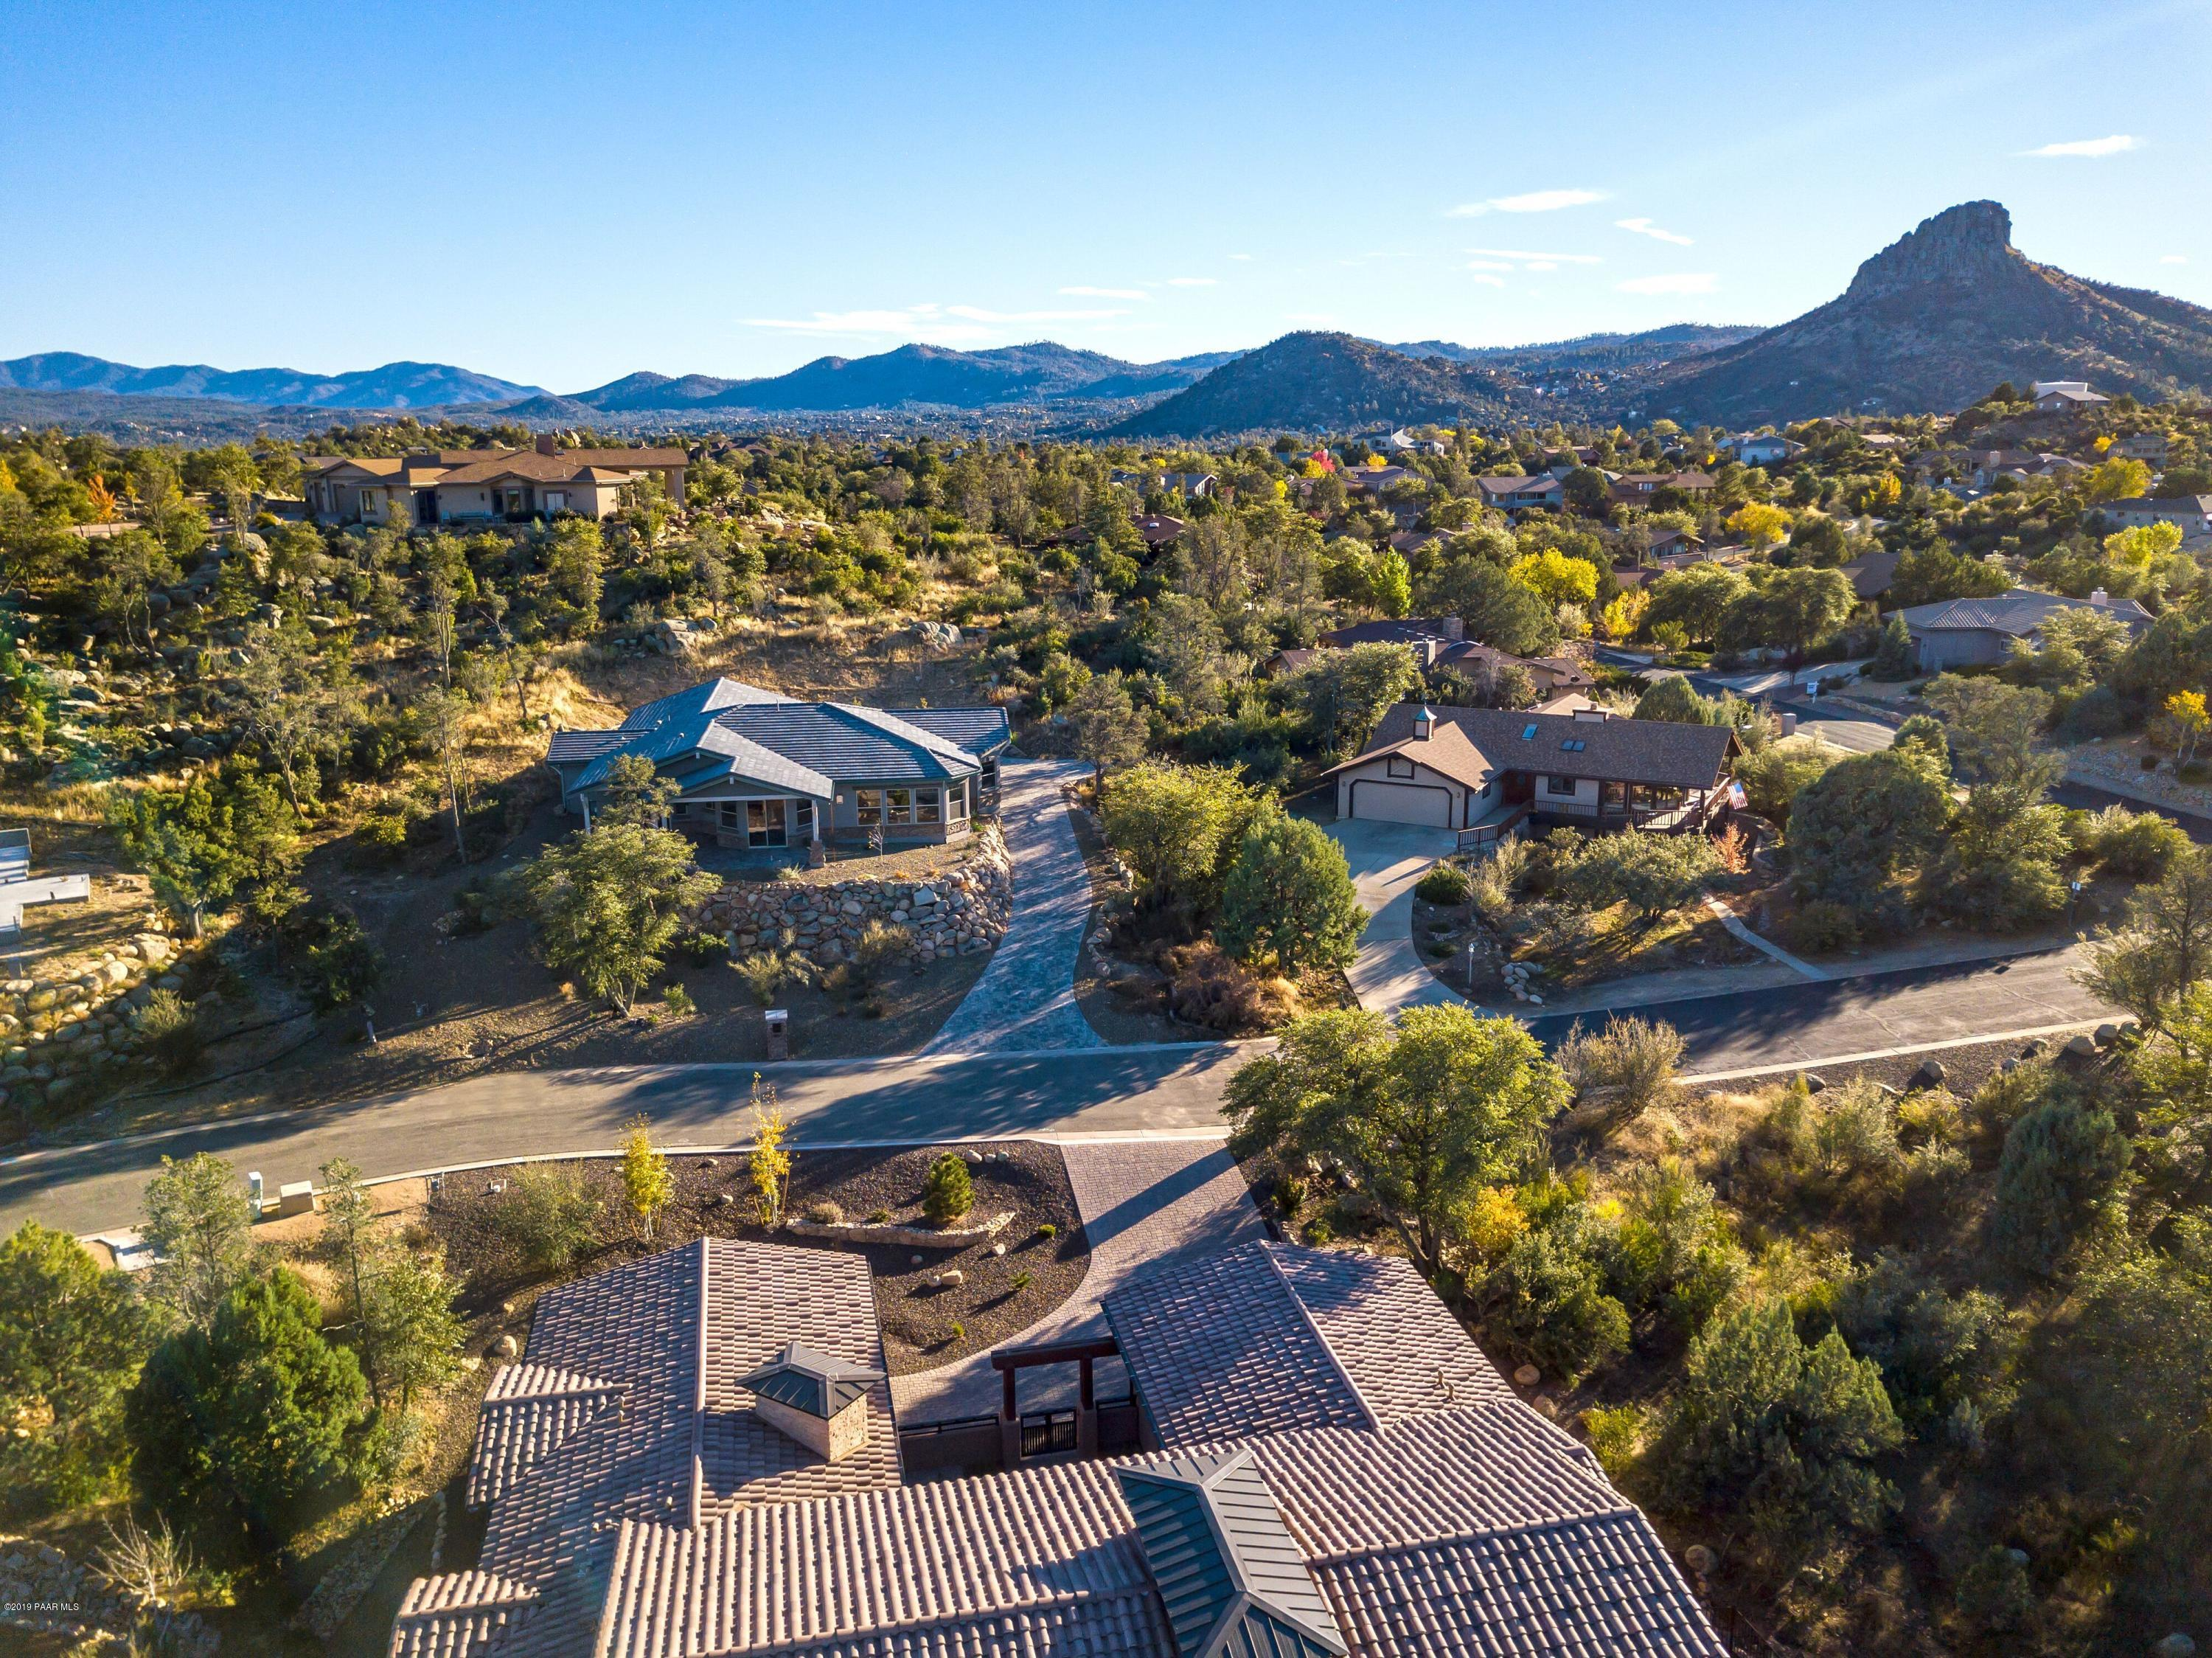 Photo of 1858 Enchanted Canyon, Prescott, AZ 86305